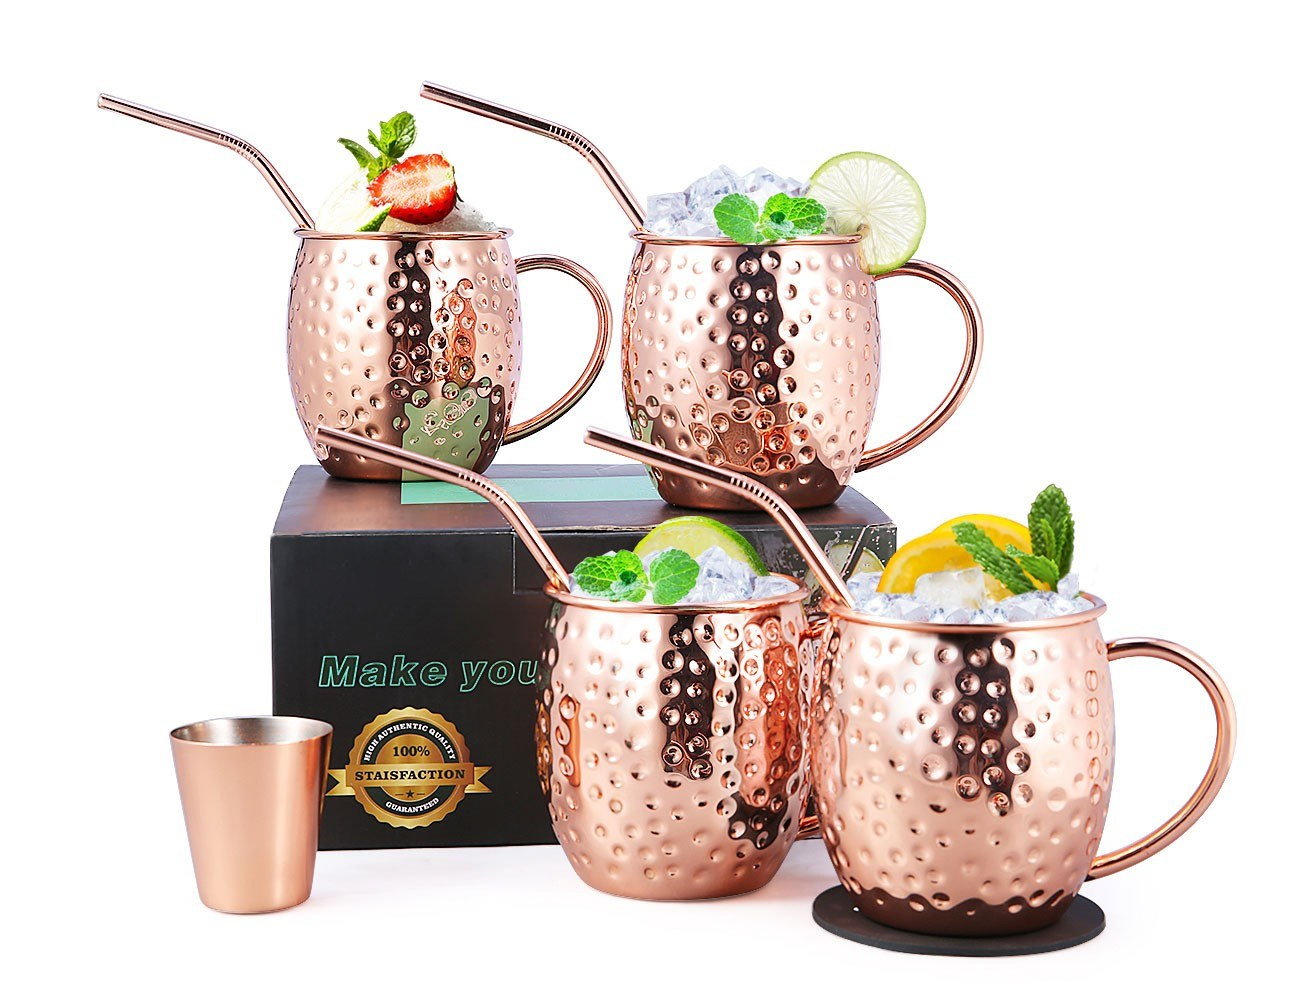 Tomtop - [US Clearance Sale] 67% OFF 4PCS Esonmus Moscow Mule Copper Mugs, $21.99 (Inclusive of VAT)